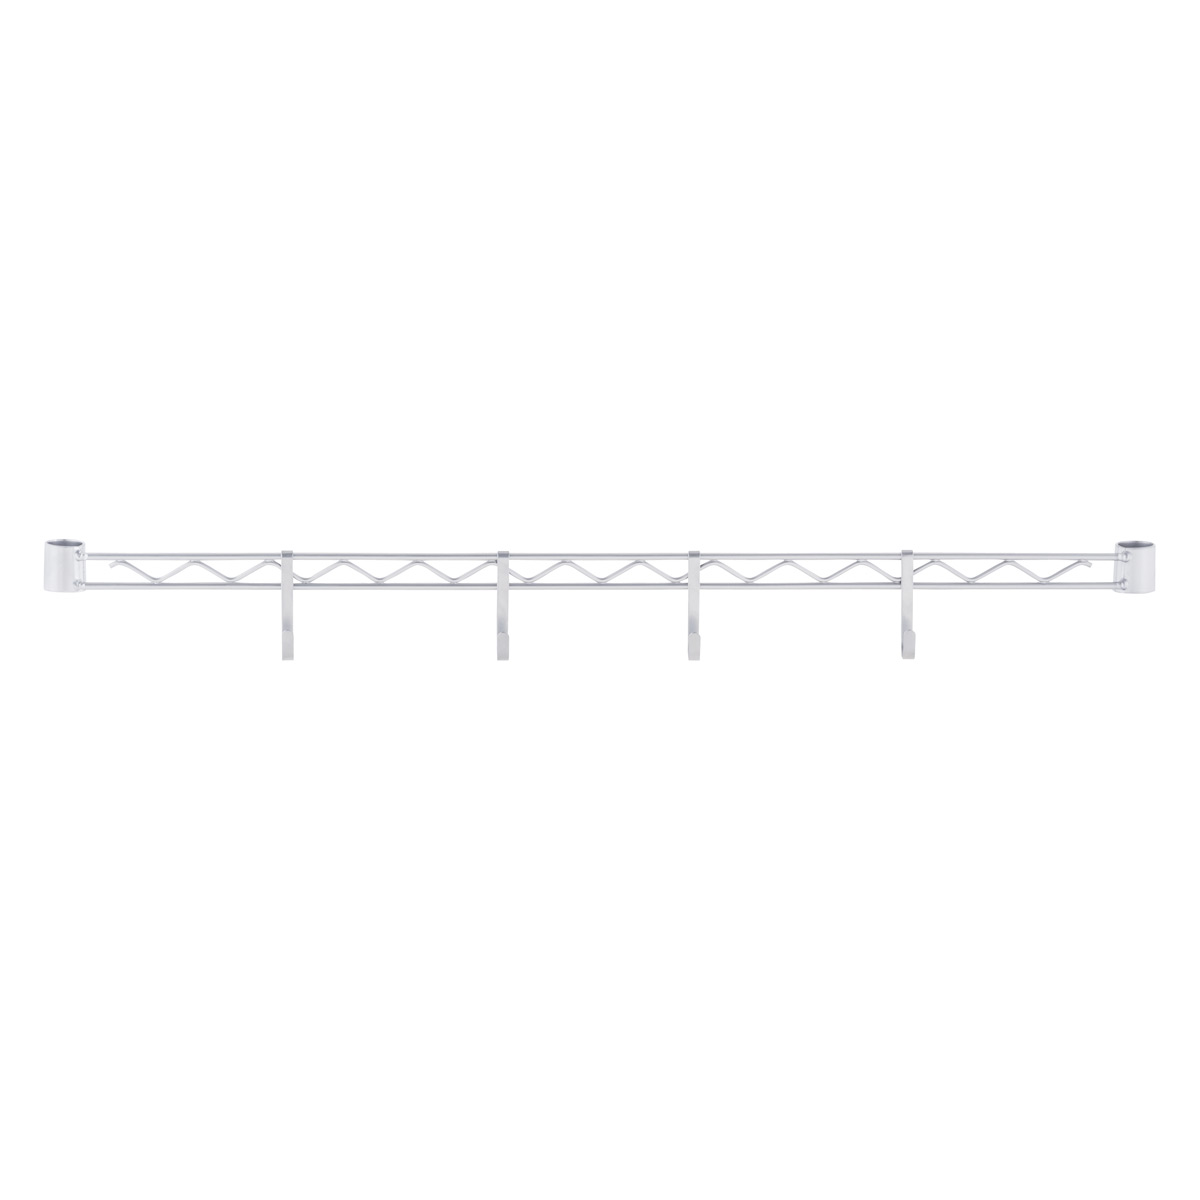 Hanger Rail with Snap-On Hooks